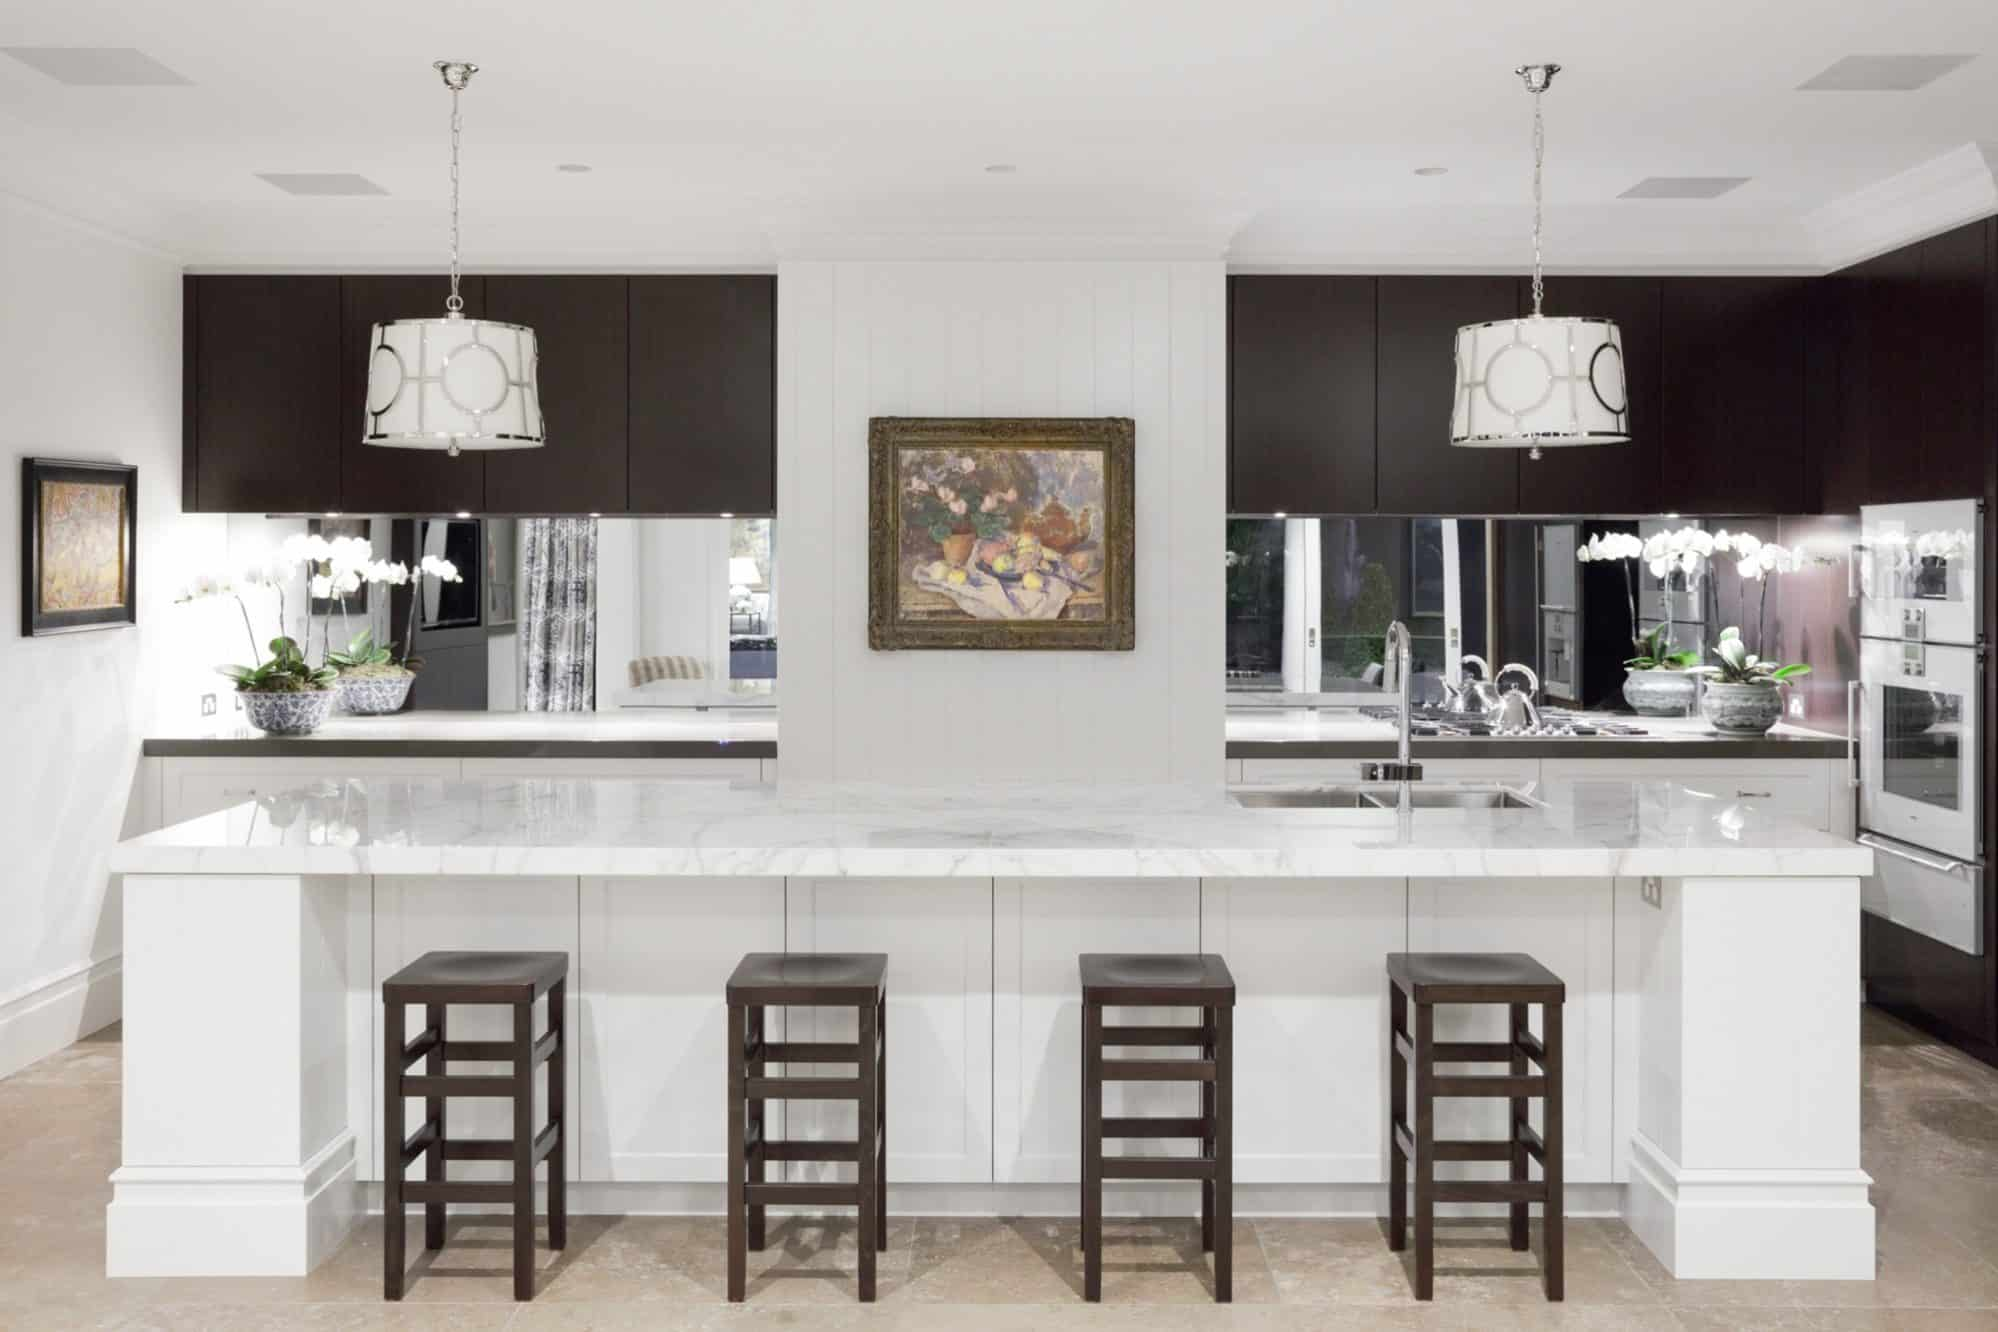 Double Bay Kitchen fuses traditional and modern